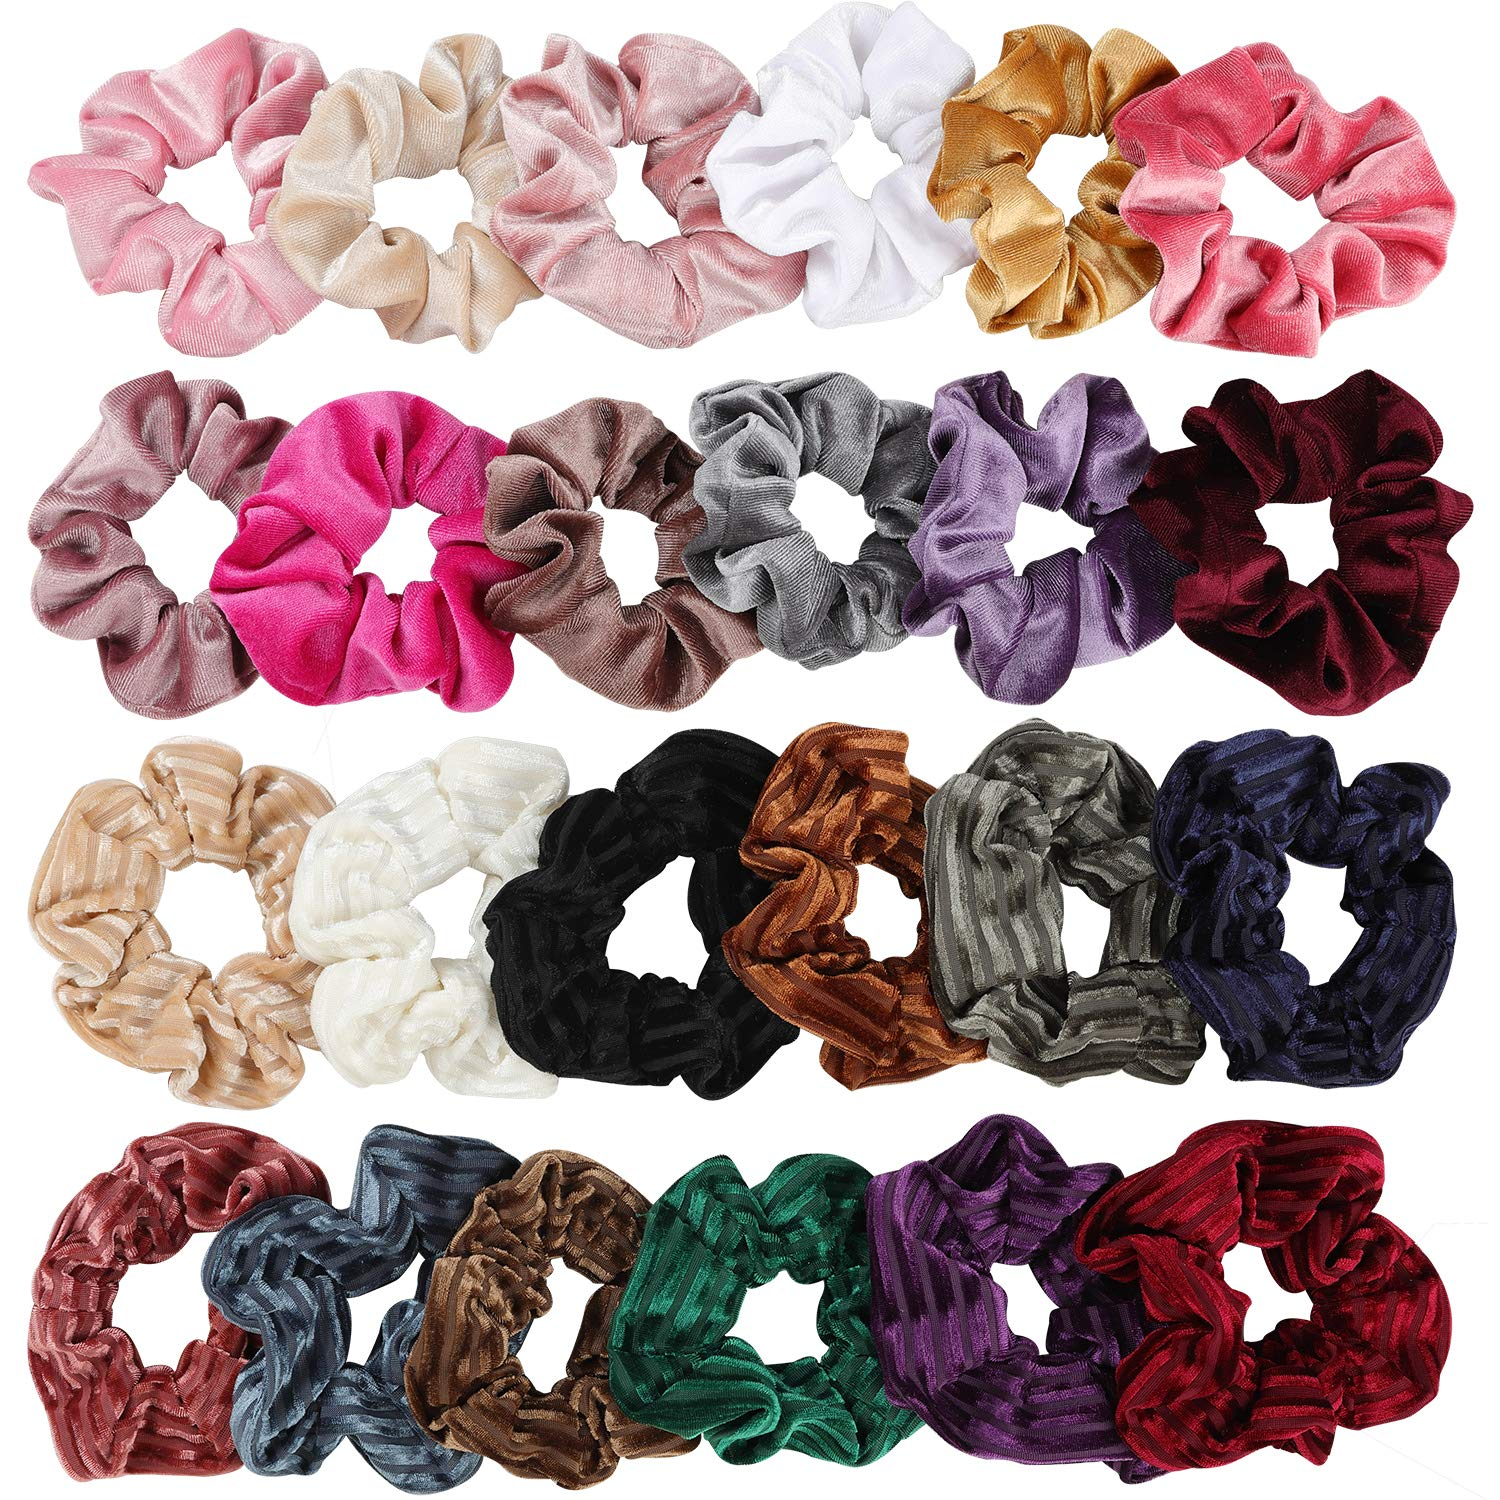 9 telephone cord scrunchies coral lilac stretchy Elastic Bands for hair Styling